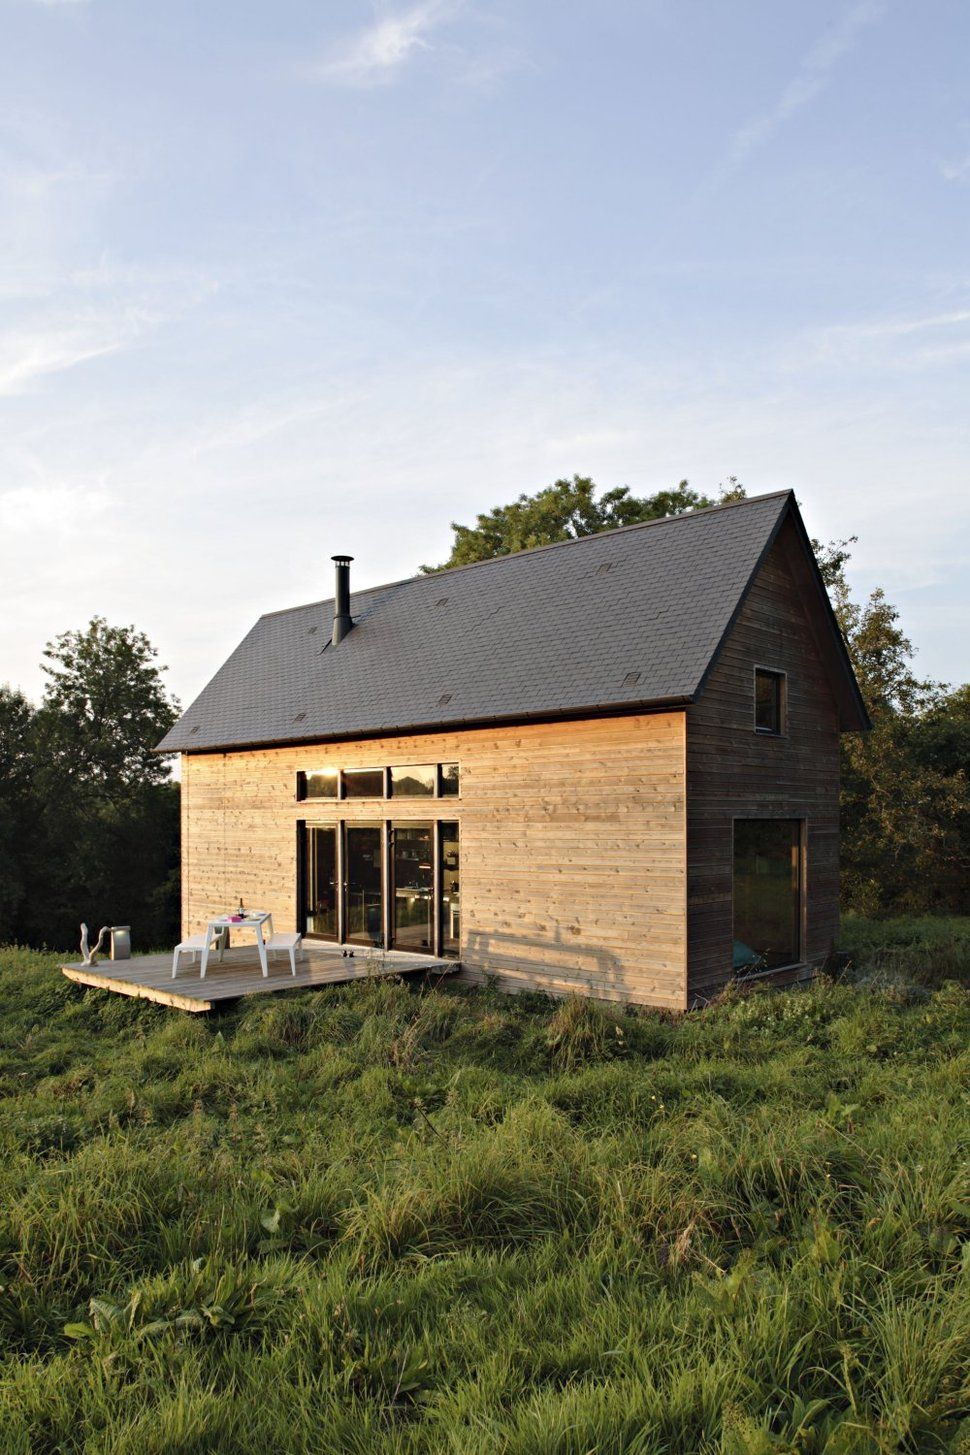 Most Inspiring Barn Cabin Home - 2cc0b1e7912d32f1fb851907d08f6804  Trends_672286.jpg